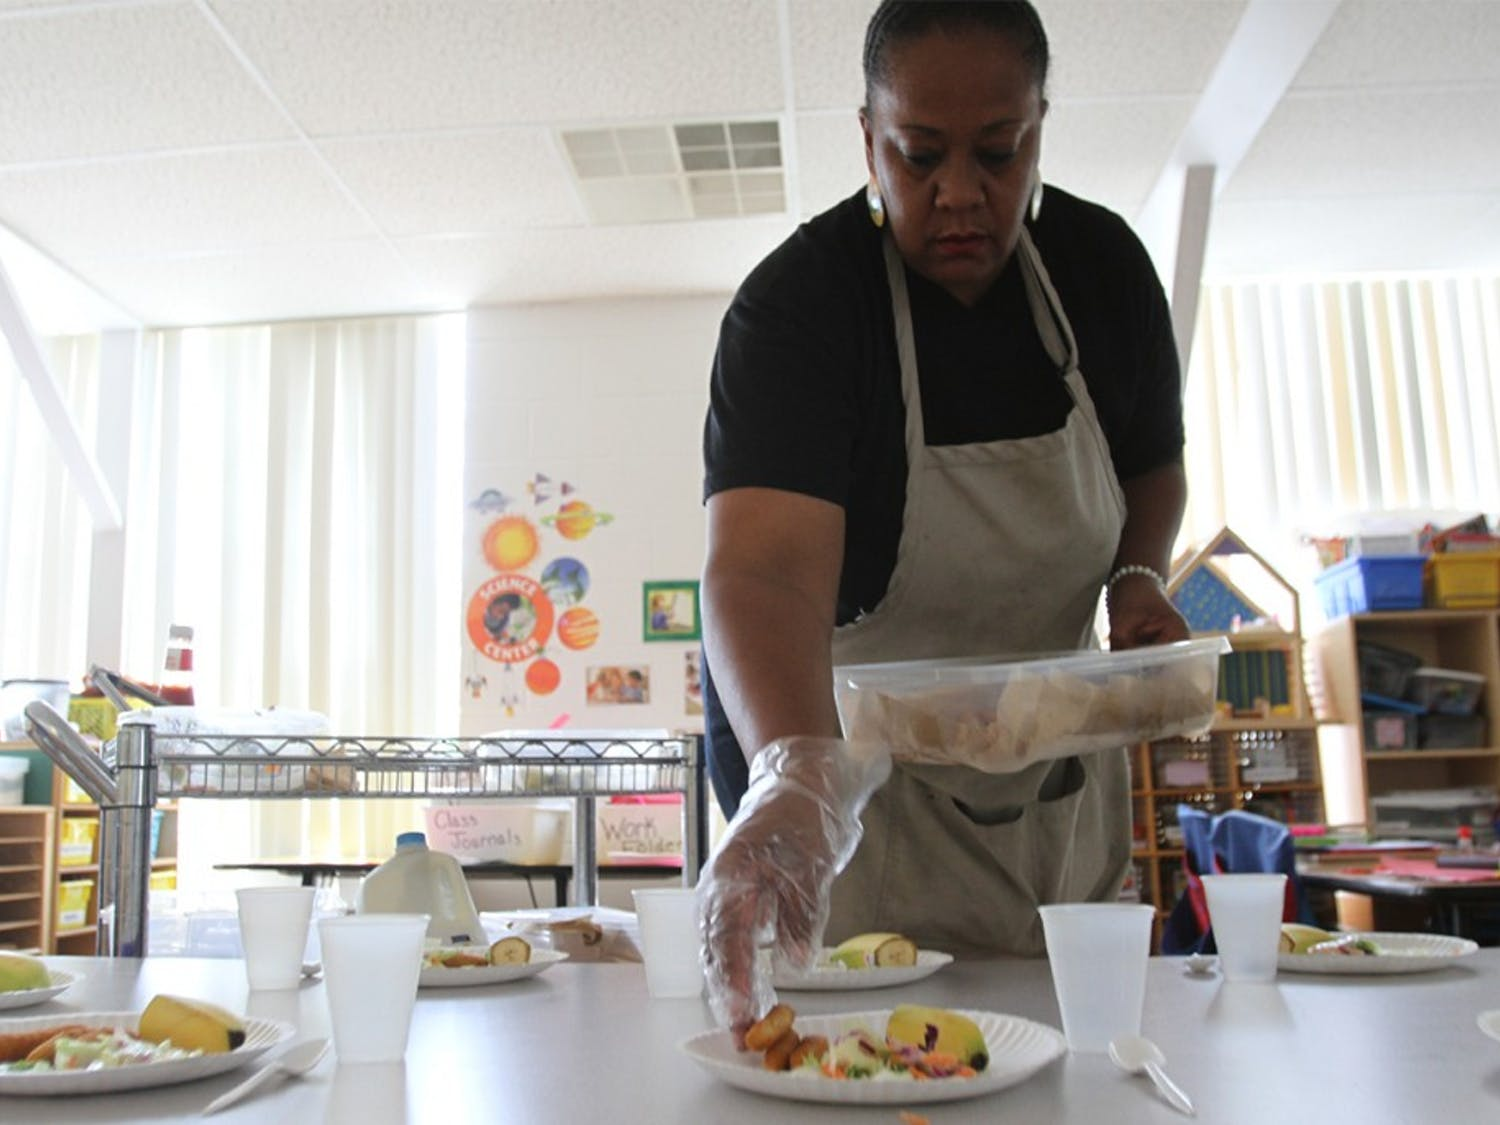 Sonya Dixon, known as Ms. Cookie, cooks and serves lunch at Learning Expressions Childcare Center on Thursday.